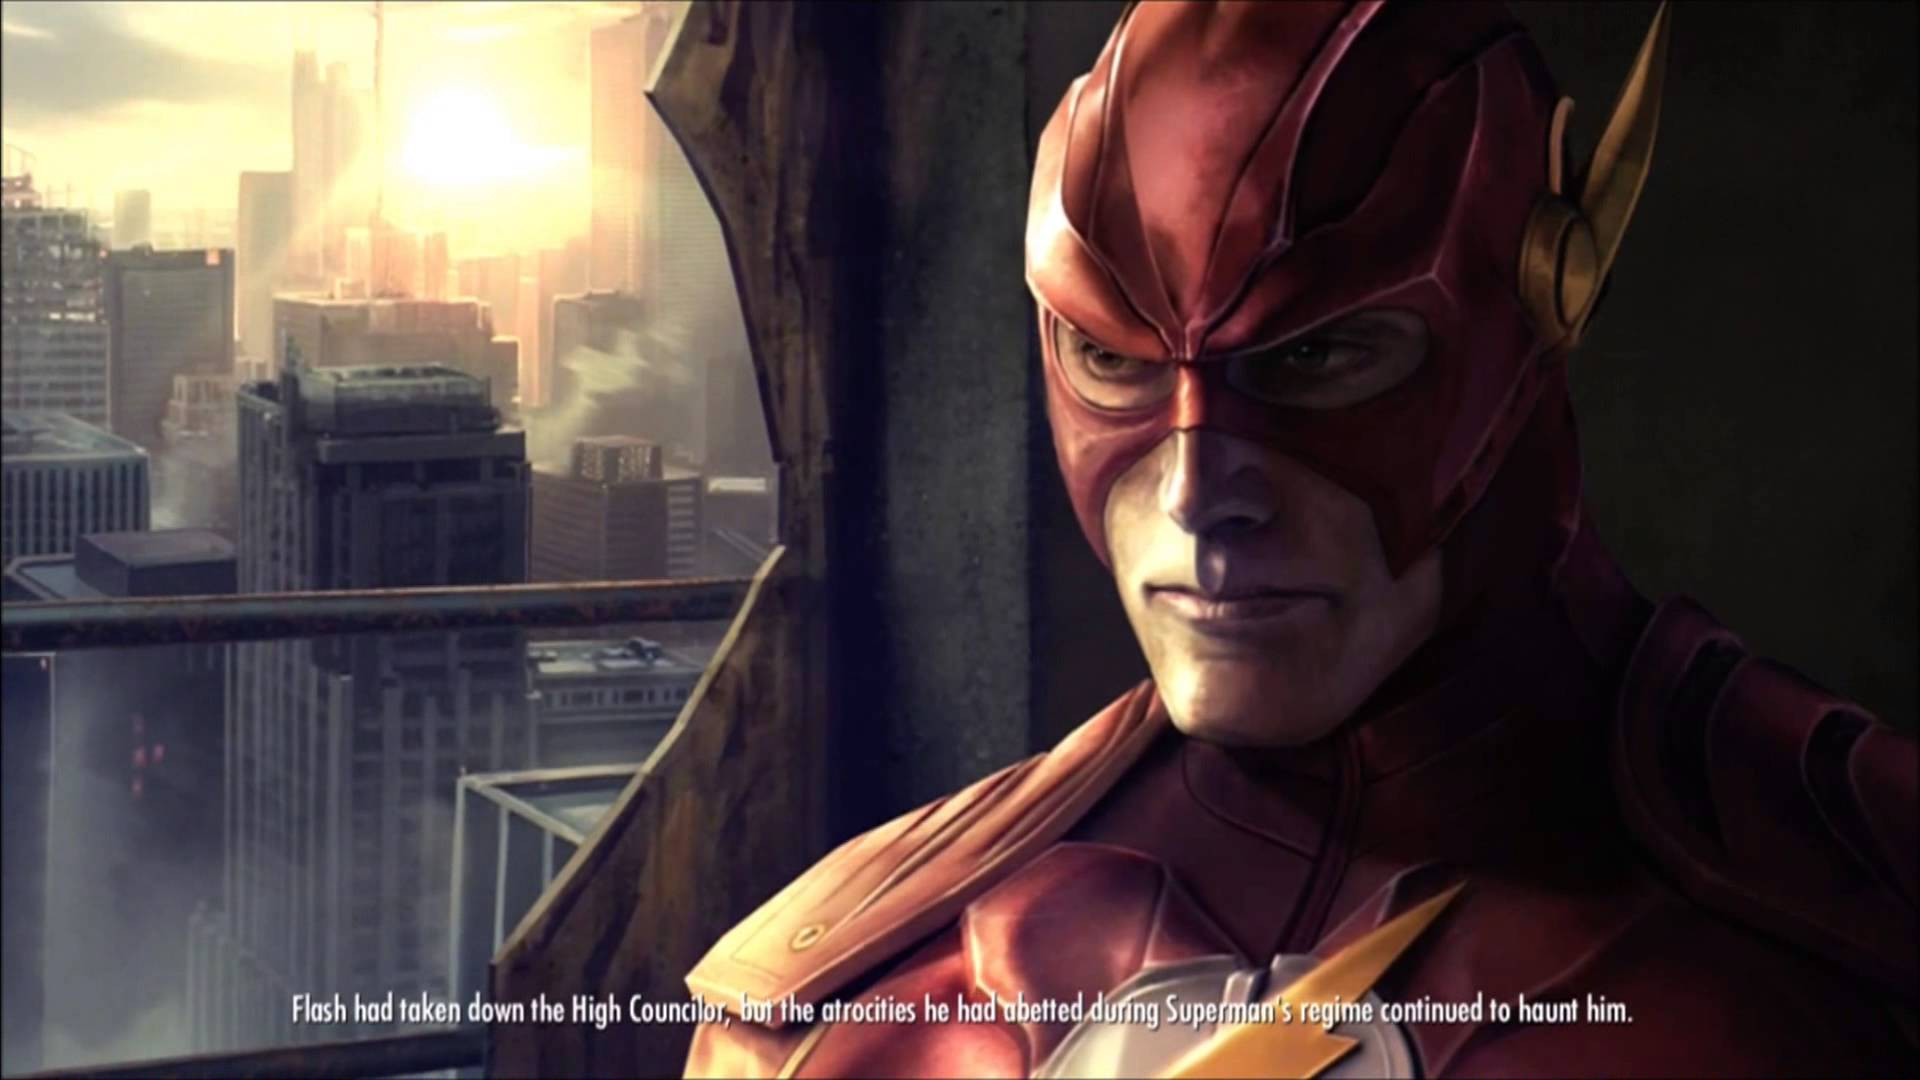 Download flash injustice wallpaper images is cool wallpapers flash injustice wallpaper images is cool wallpapers voltagebd Images